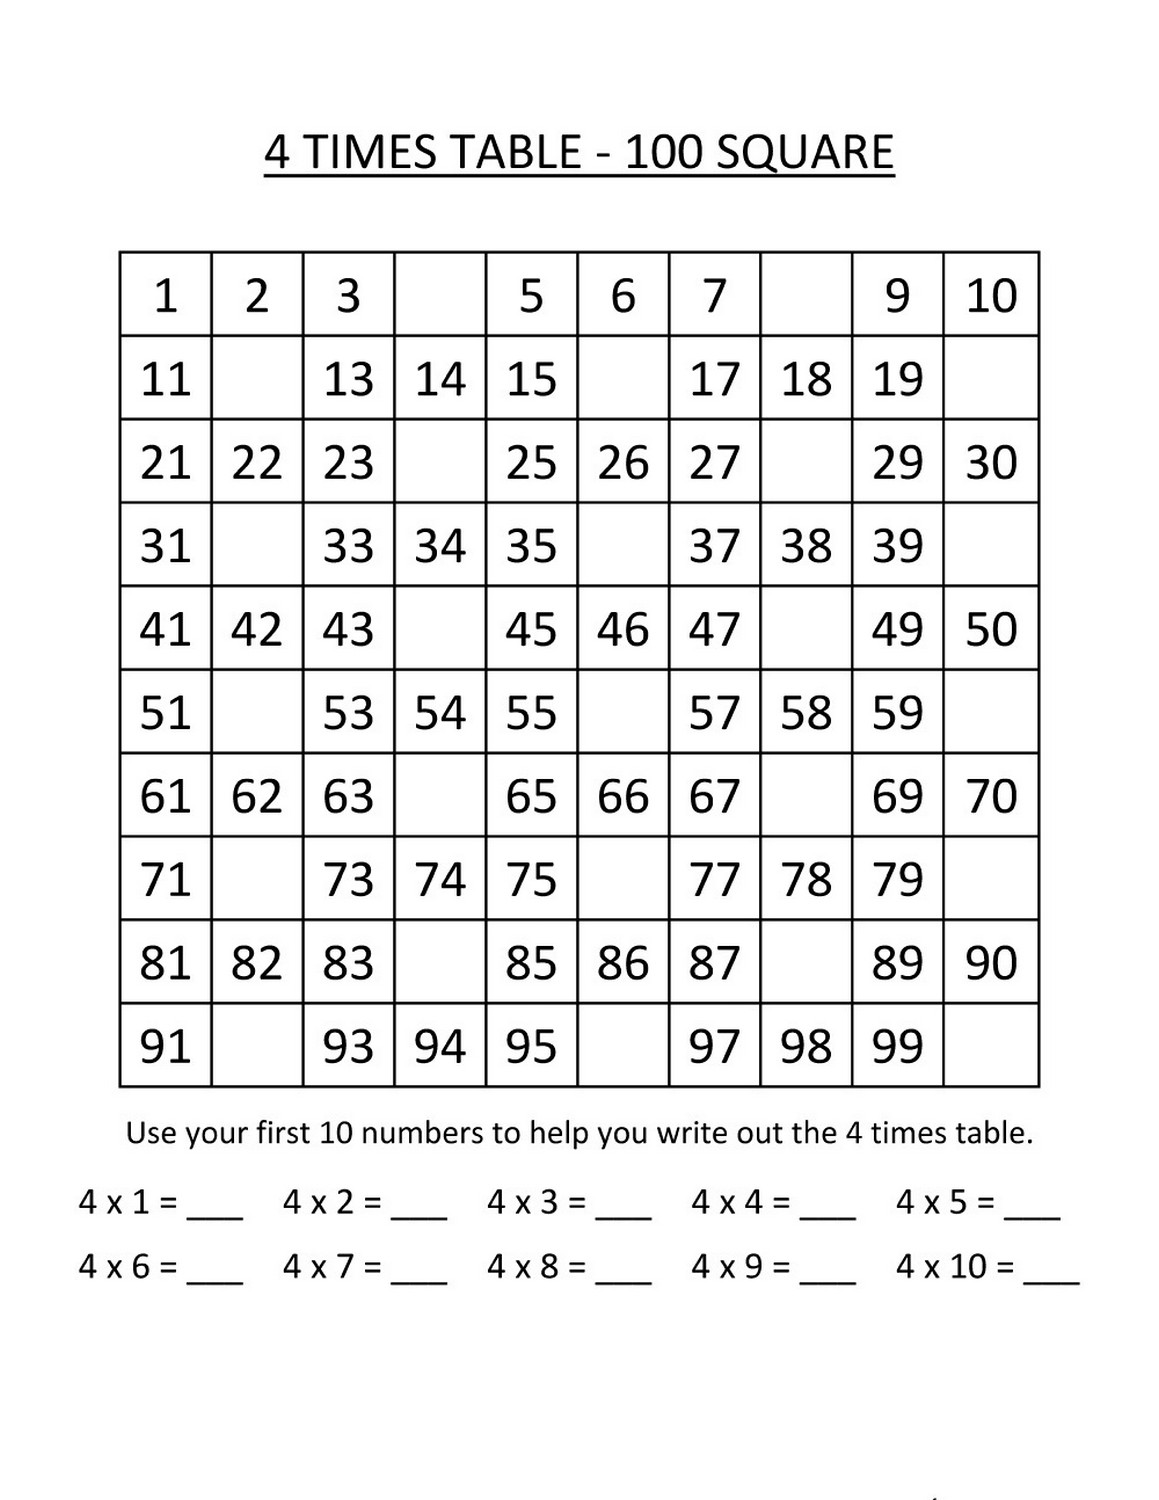 times table exercise basic practice to 100